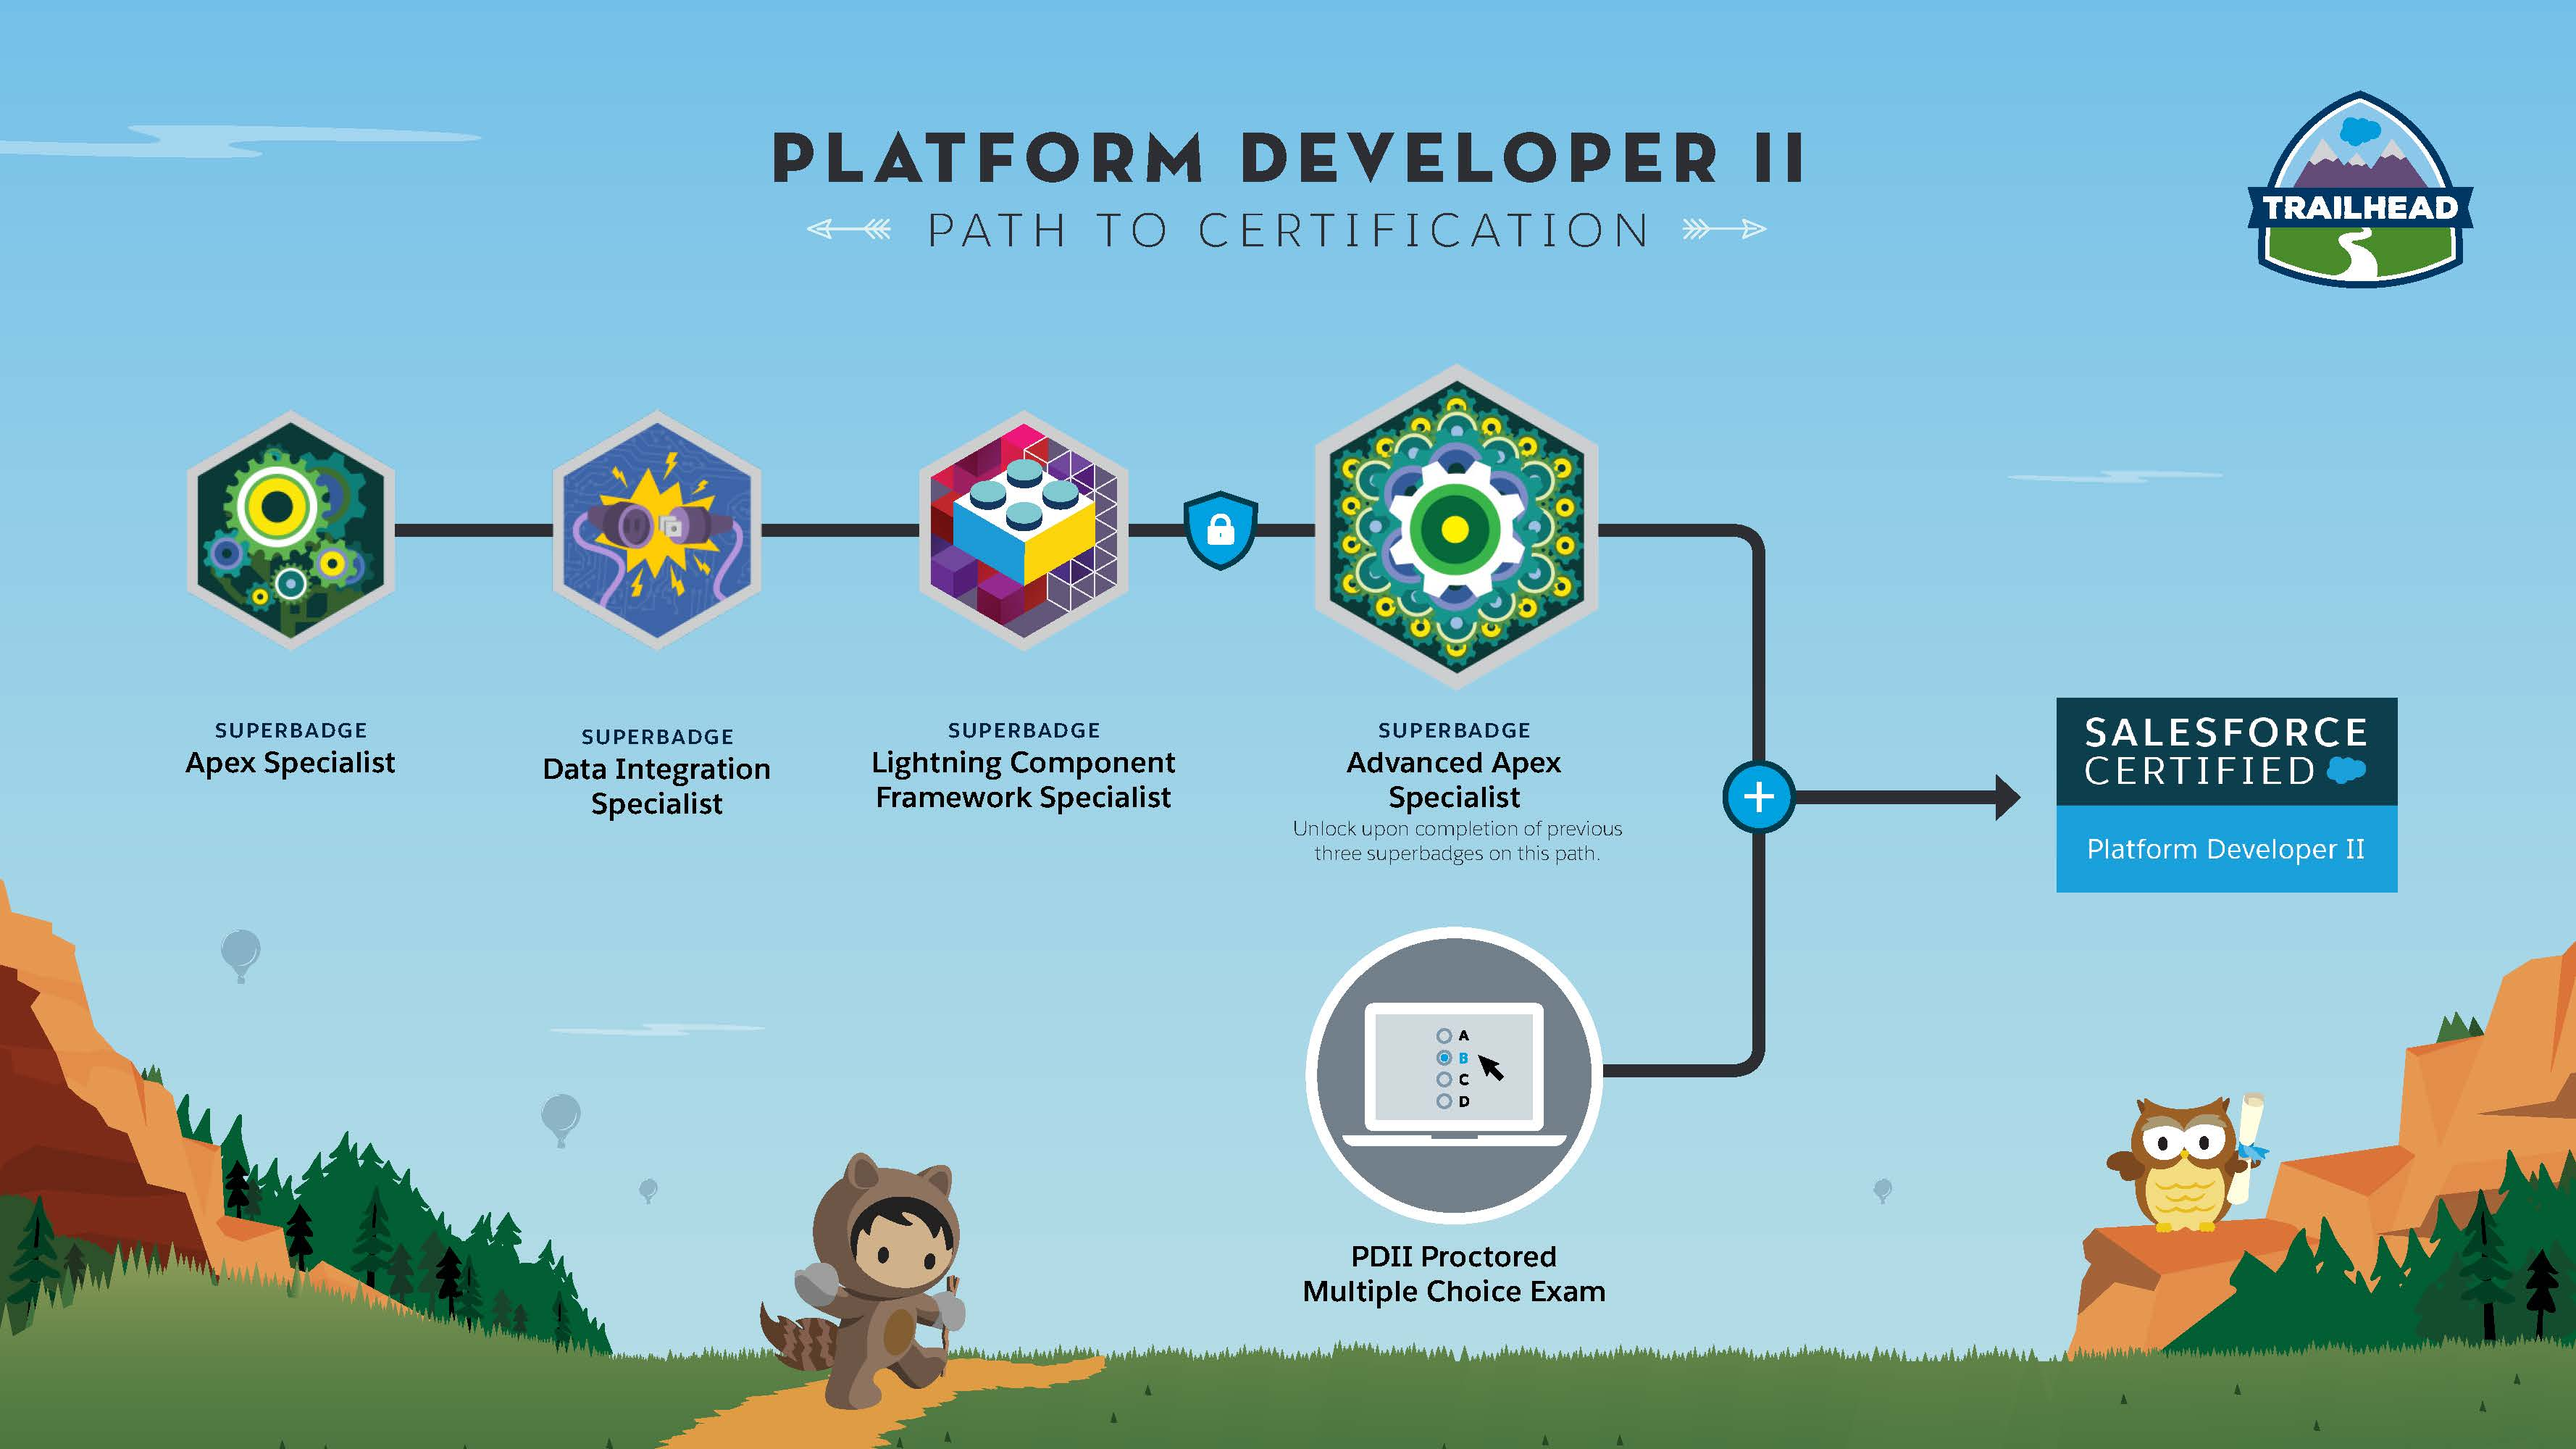 Salesforce Platform Developer II